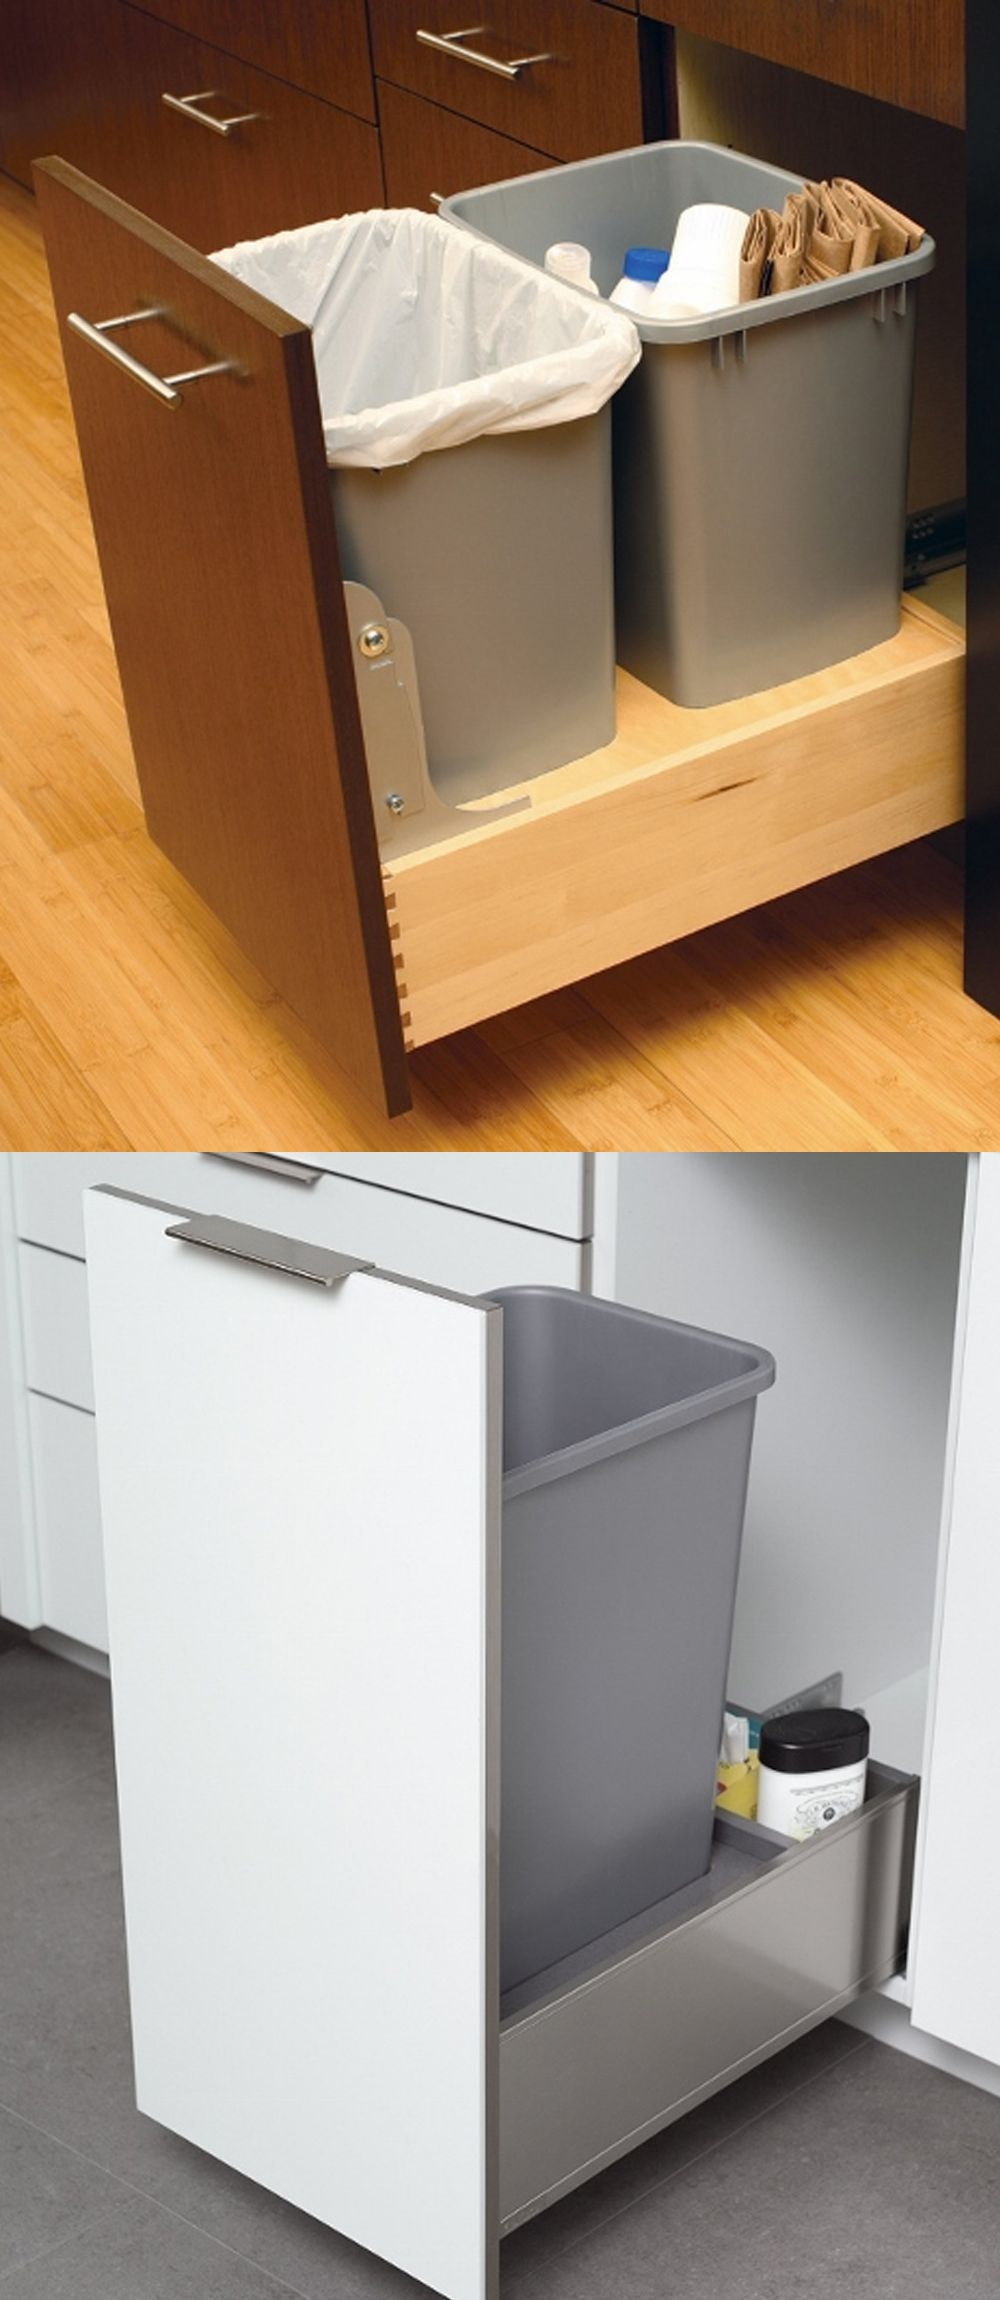 Hands Free Trash Recycling Cabinets A Simple Solution To A Messy Problem Kitchen Trash Cans Kitchen Bin Under Kitchen Sinks